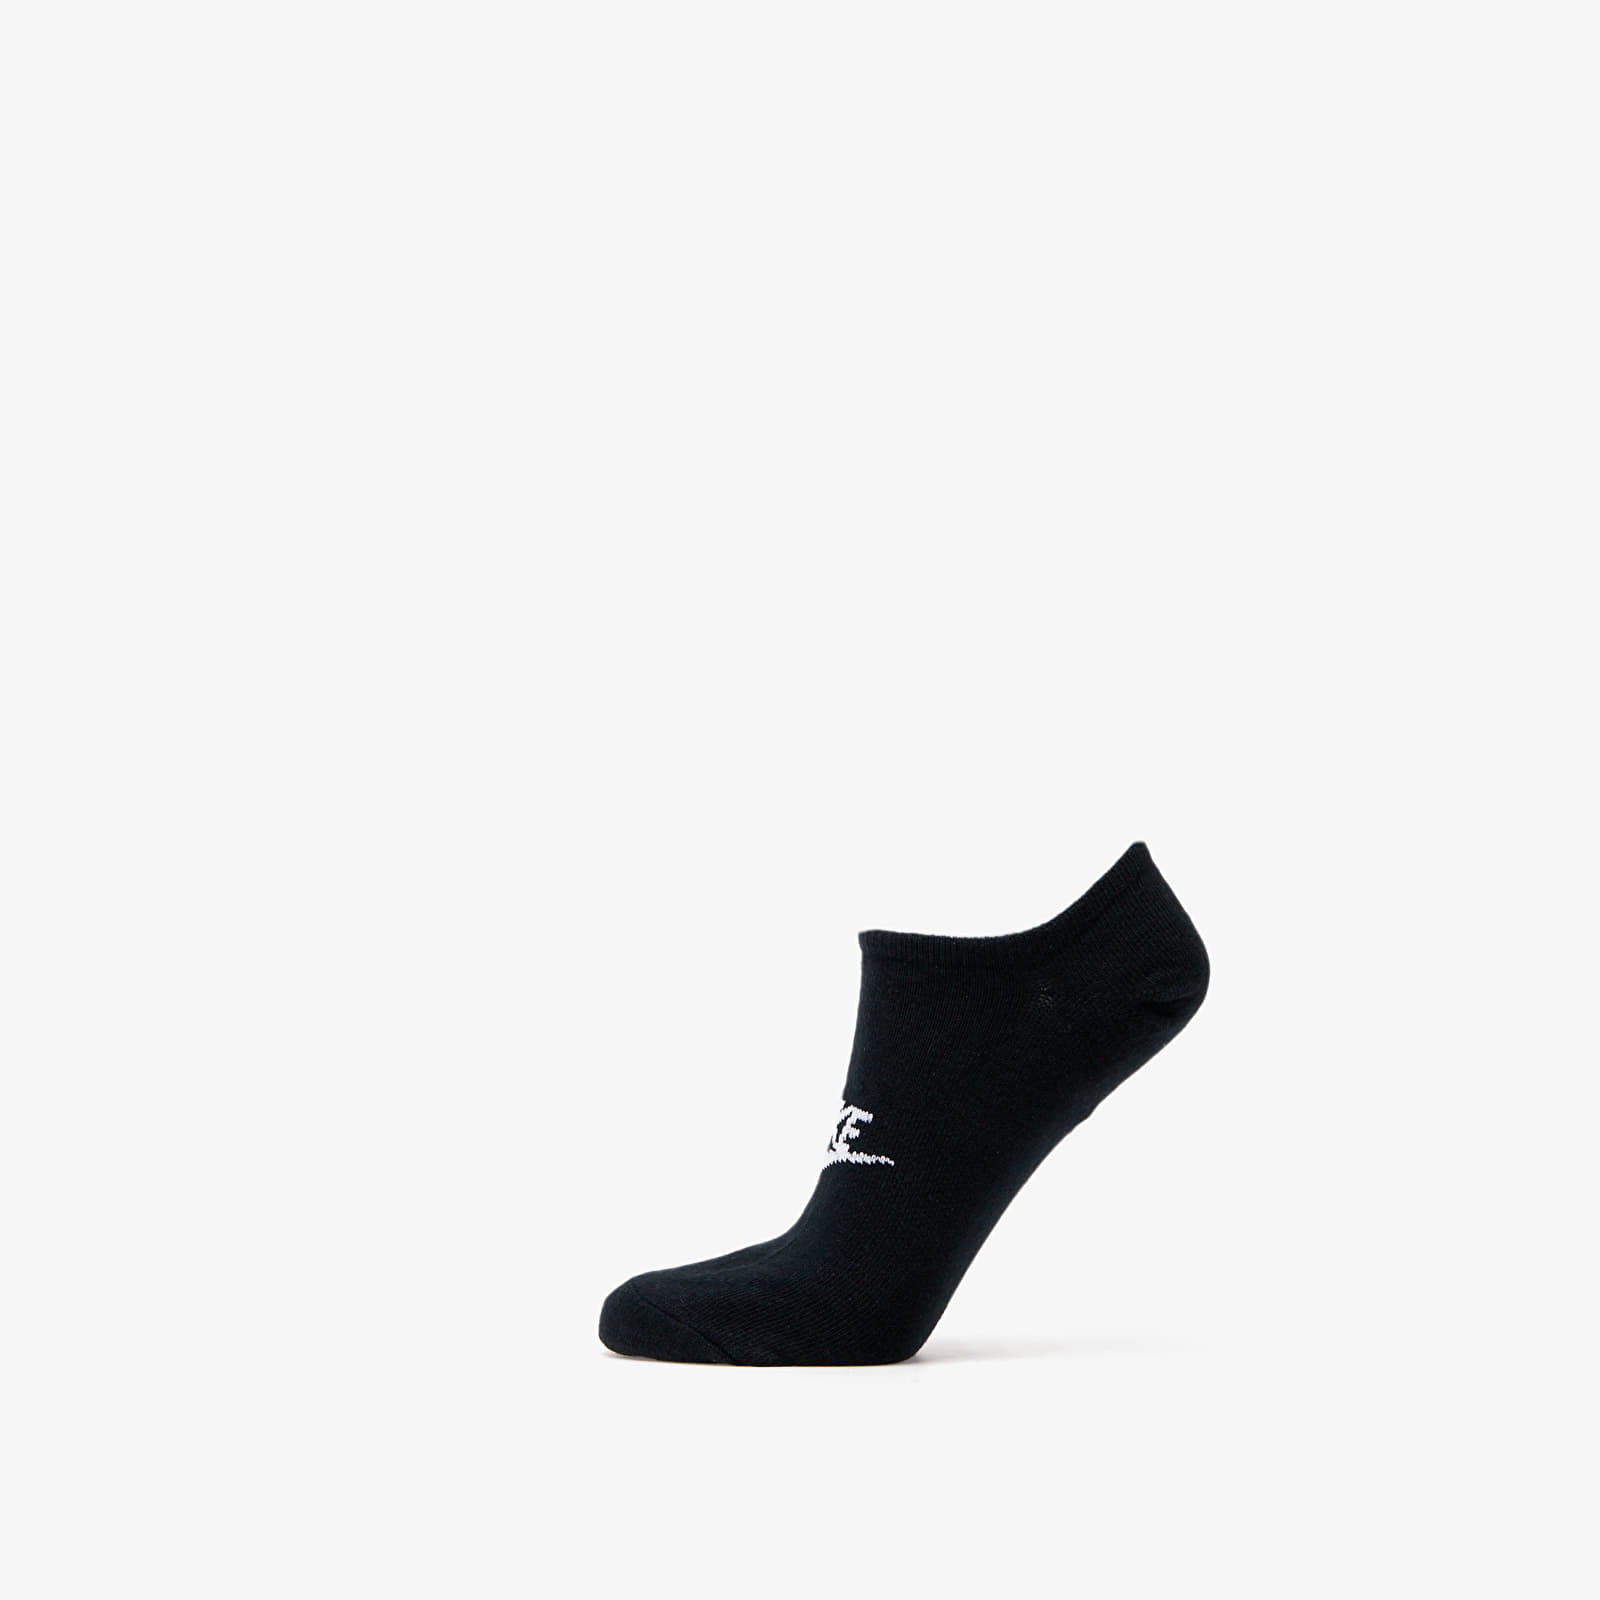 Zoknik Nike Sportswear Everyday Essential No Show Socks Black/ White